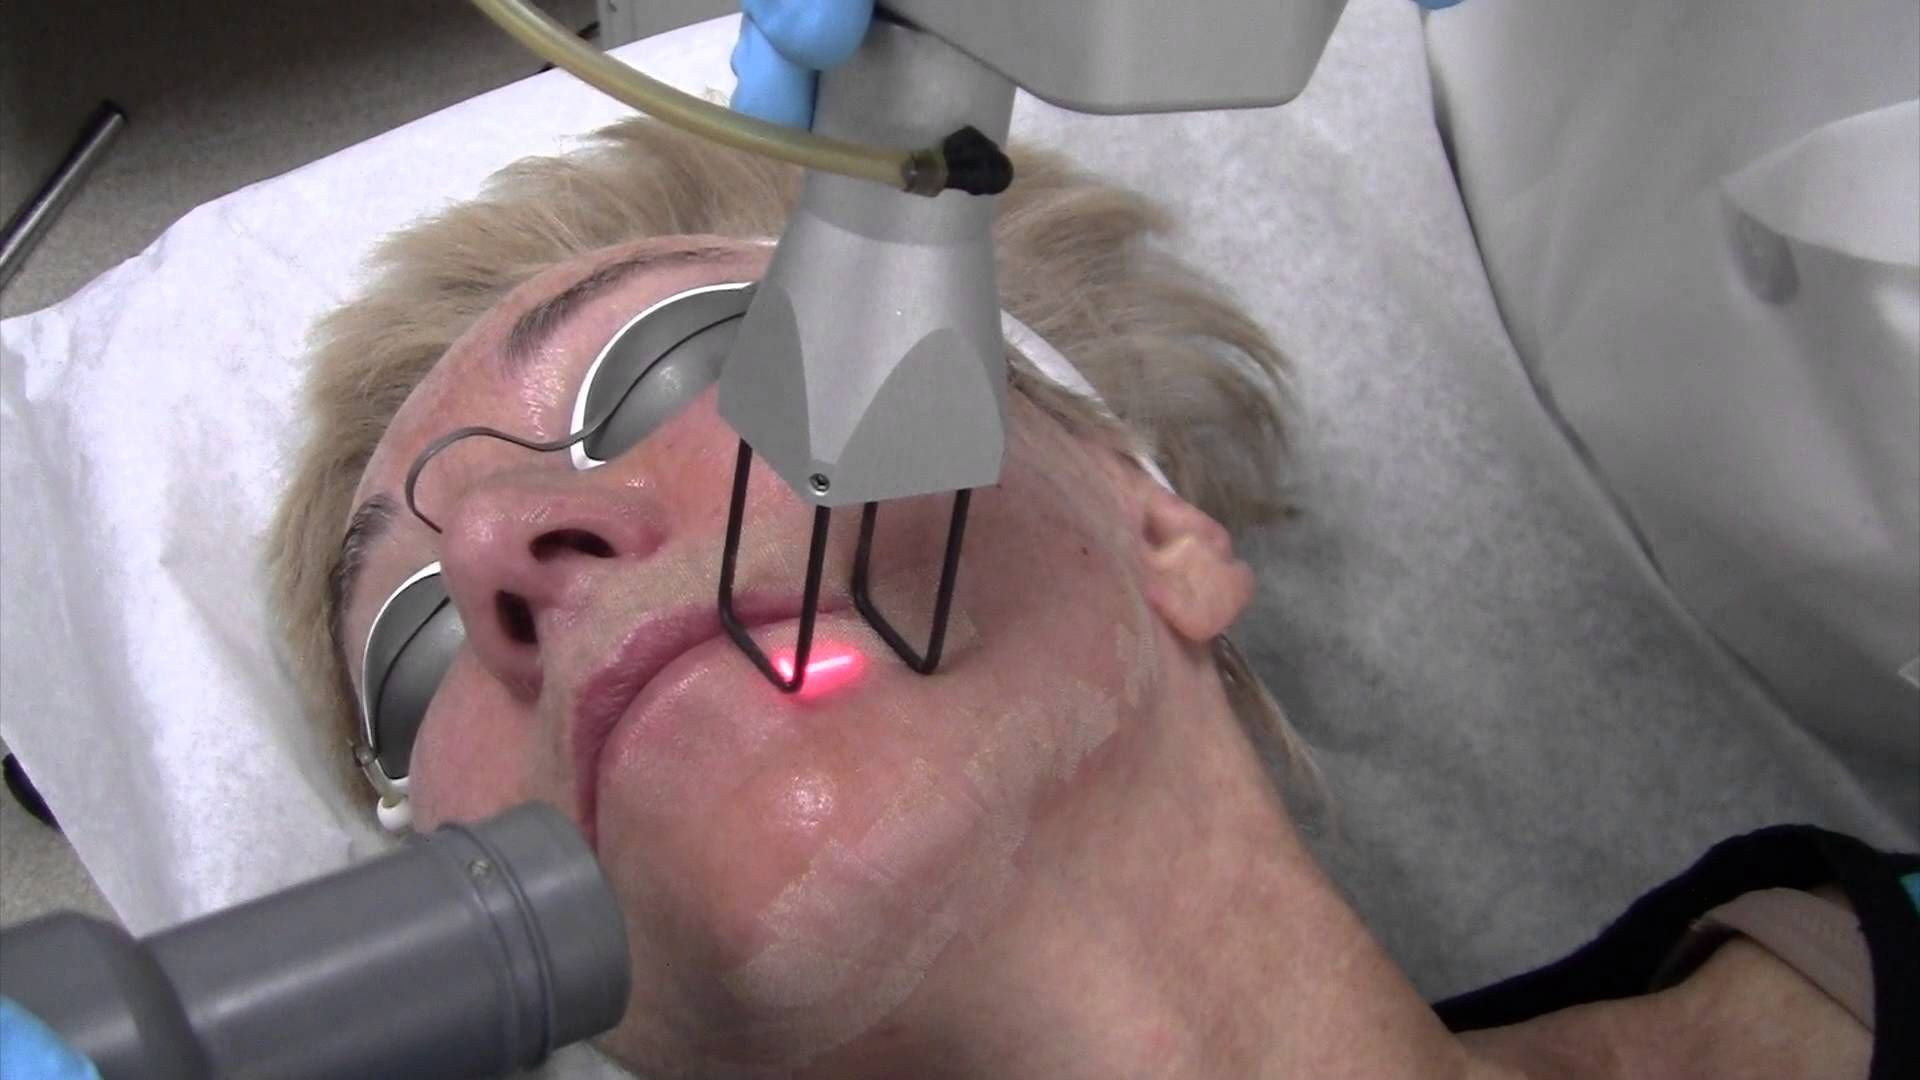 Laser Resurfacing: Learn About the Treatment and Cost